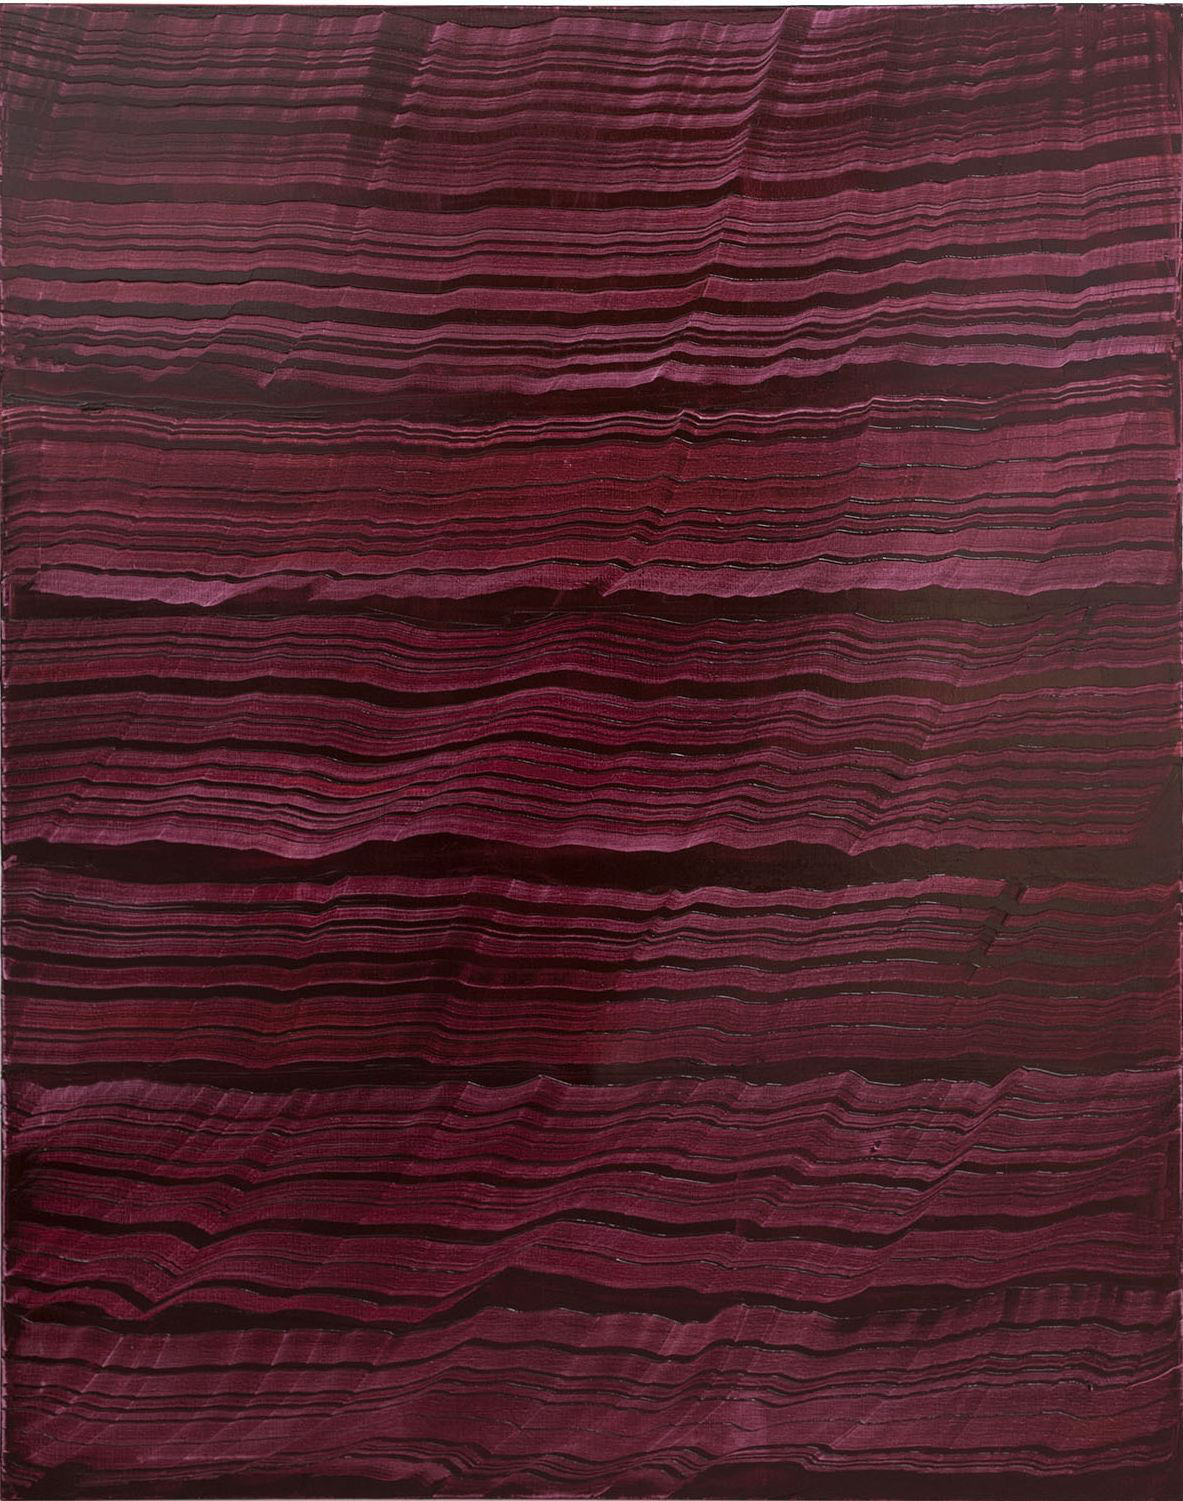 Violet 2 , 2016, Oil on linen, 70 x 55 inches